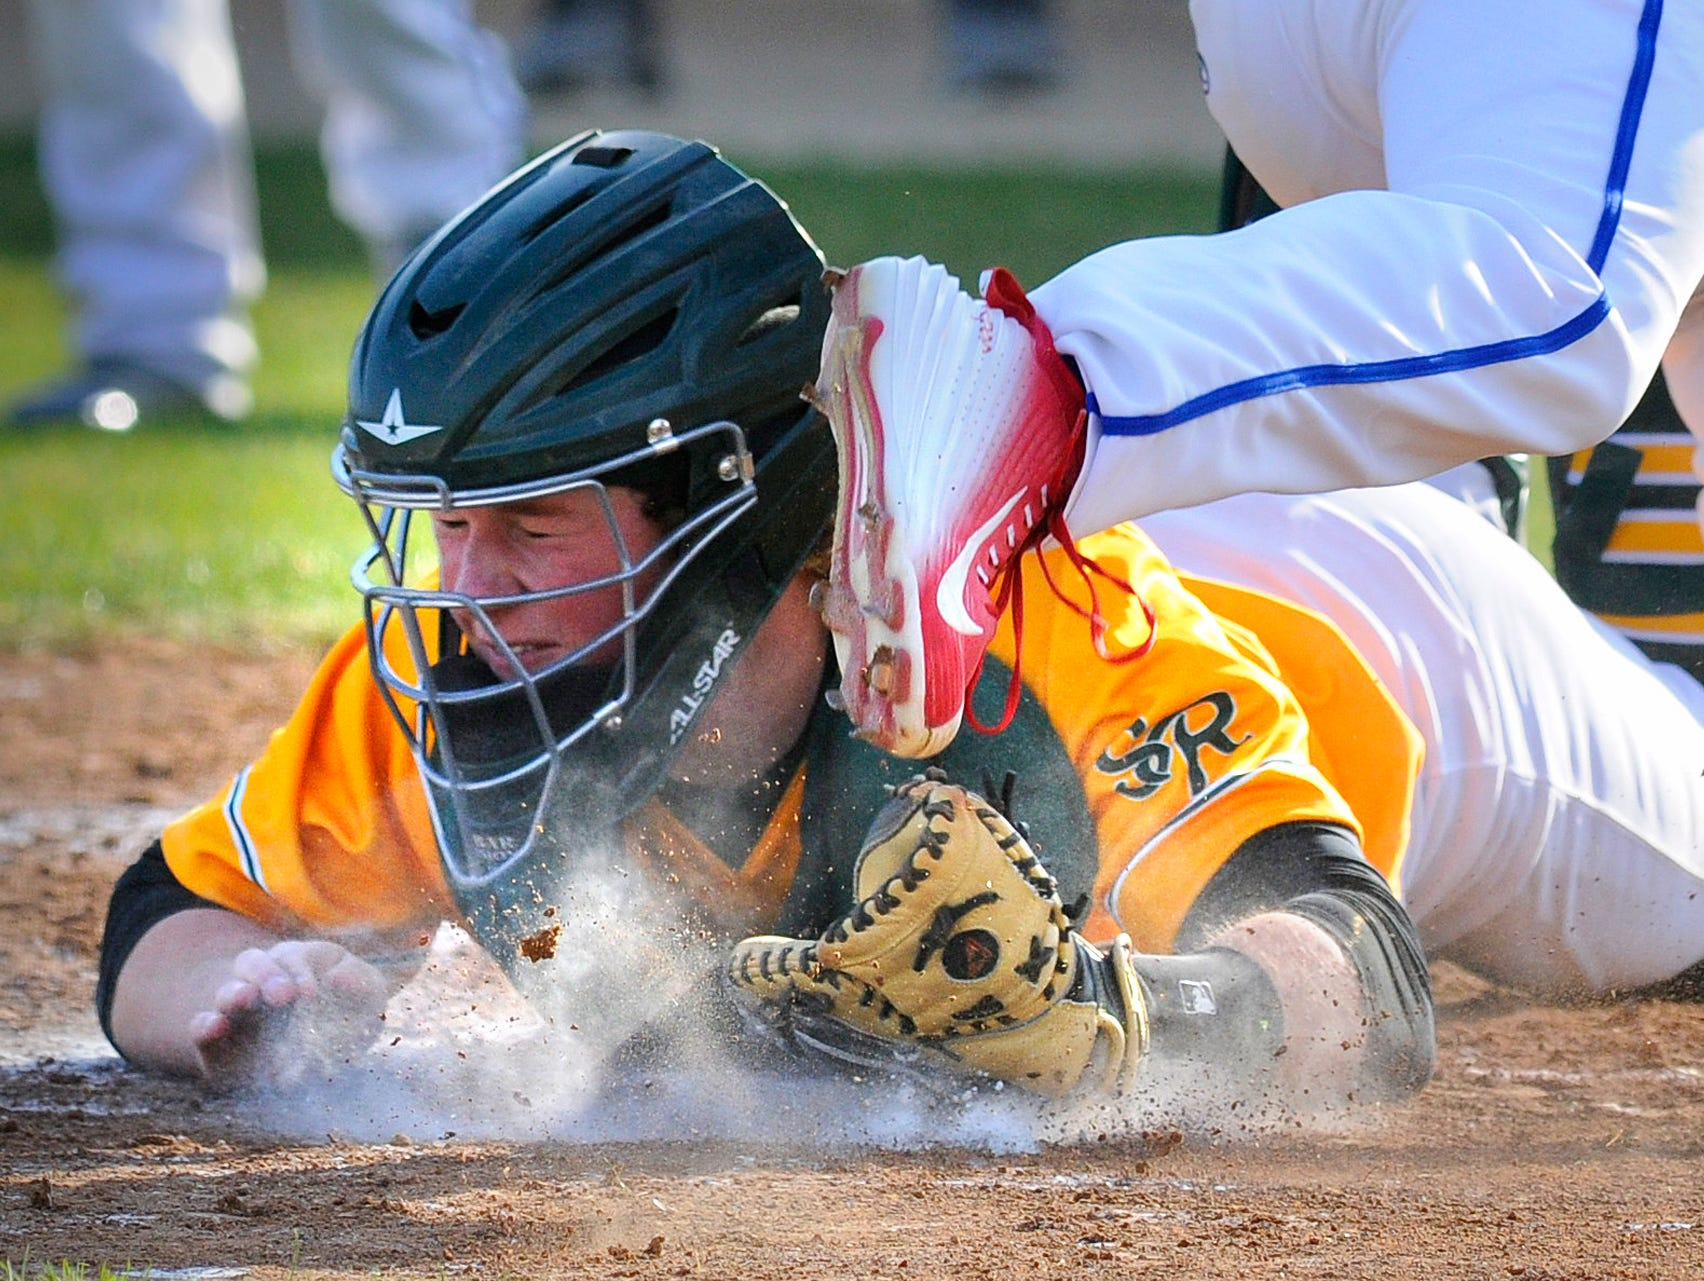 Catcher Eric Burski of Sauk Rapids tries to make a tag on a St. Cloud Apollo baserunner during Thursday's game in Sauk Rapids.